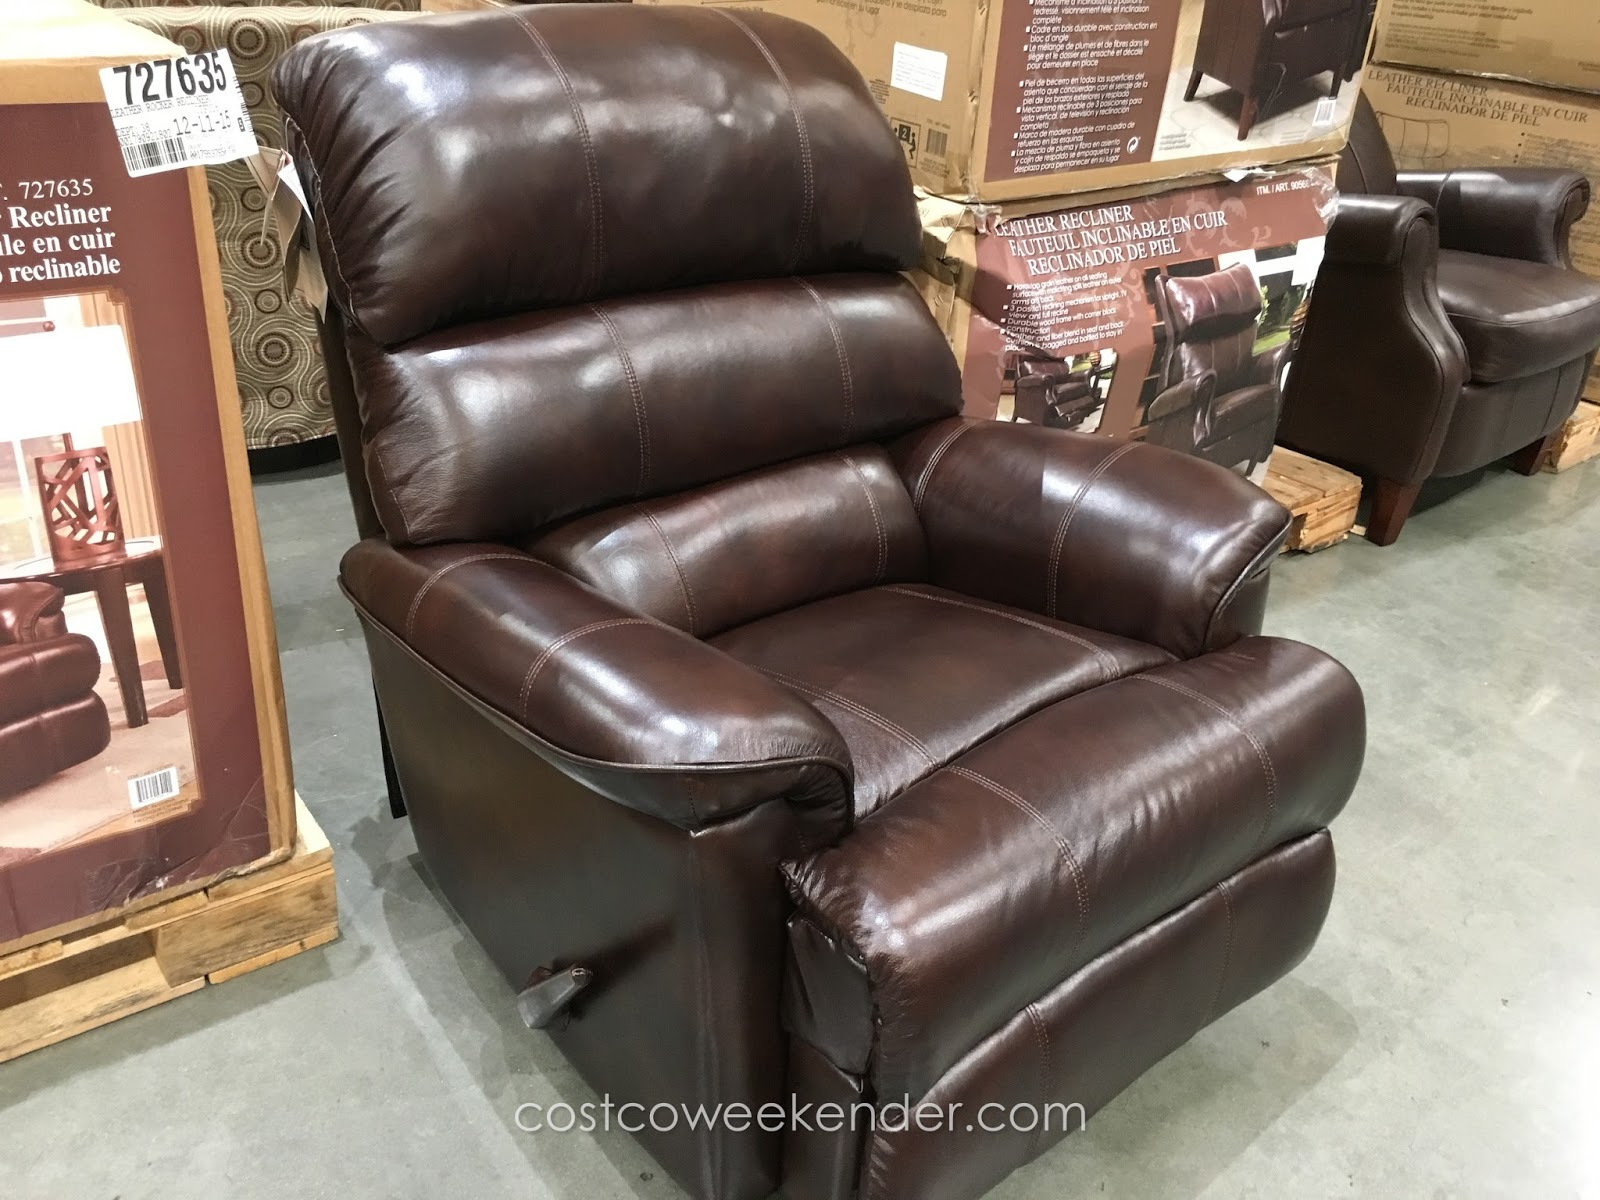 Costco Recliner Chair Barcalounger Leather Rocker Recliner Chair Costco Weekender